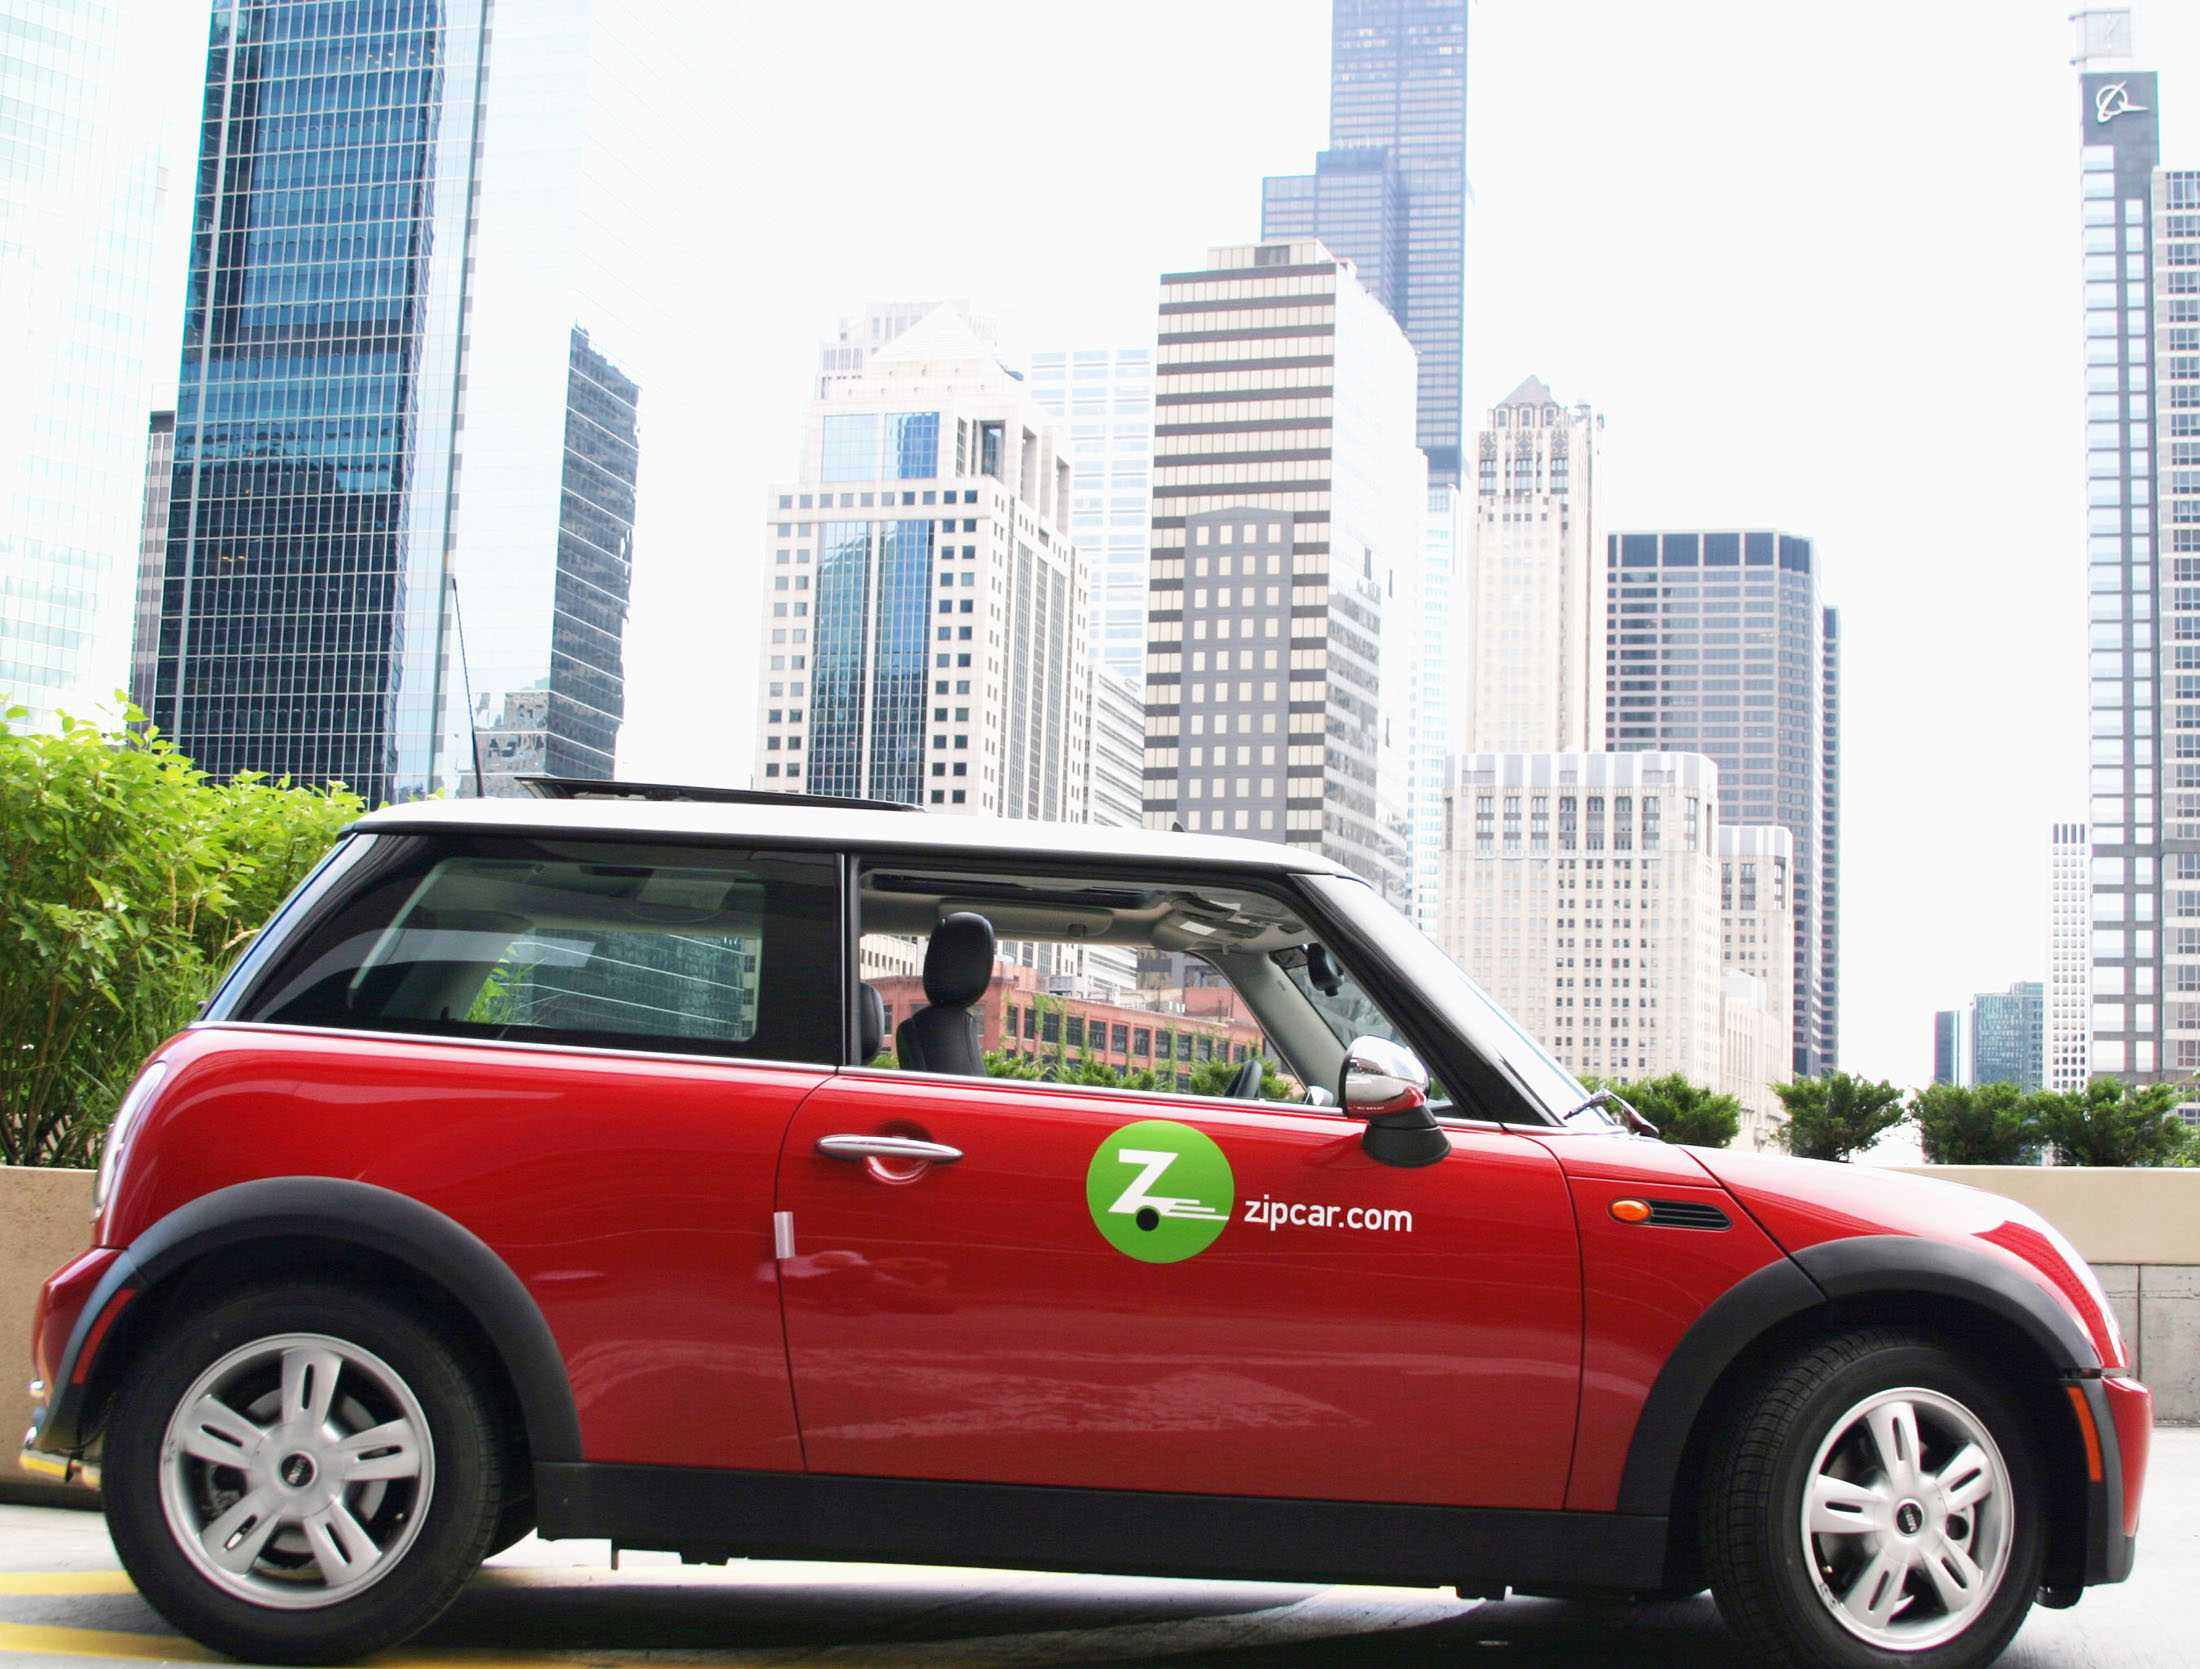 A Zipcar Mini Cooper parked in downtown Chicago. Charles Stevens (Ph.D '76), general manager of Zipcar Chicago, spoke at Wednesday night's ASG Senate about possibly bringing the car-sharing organization to Northwestern's campus.